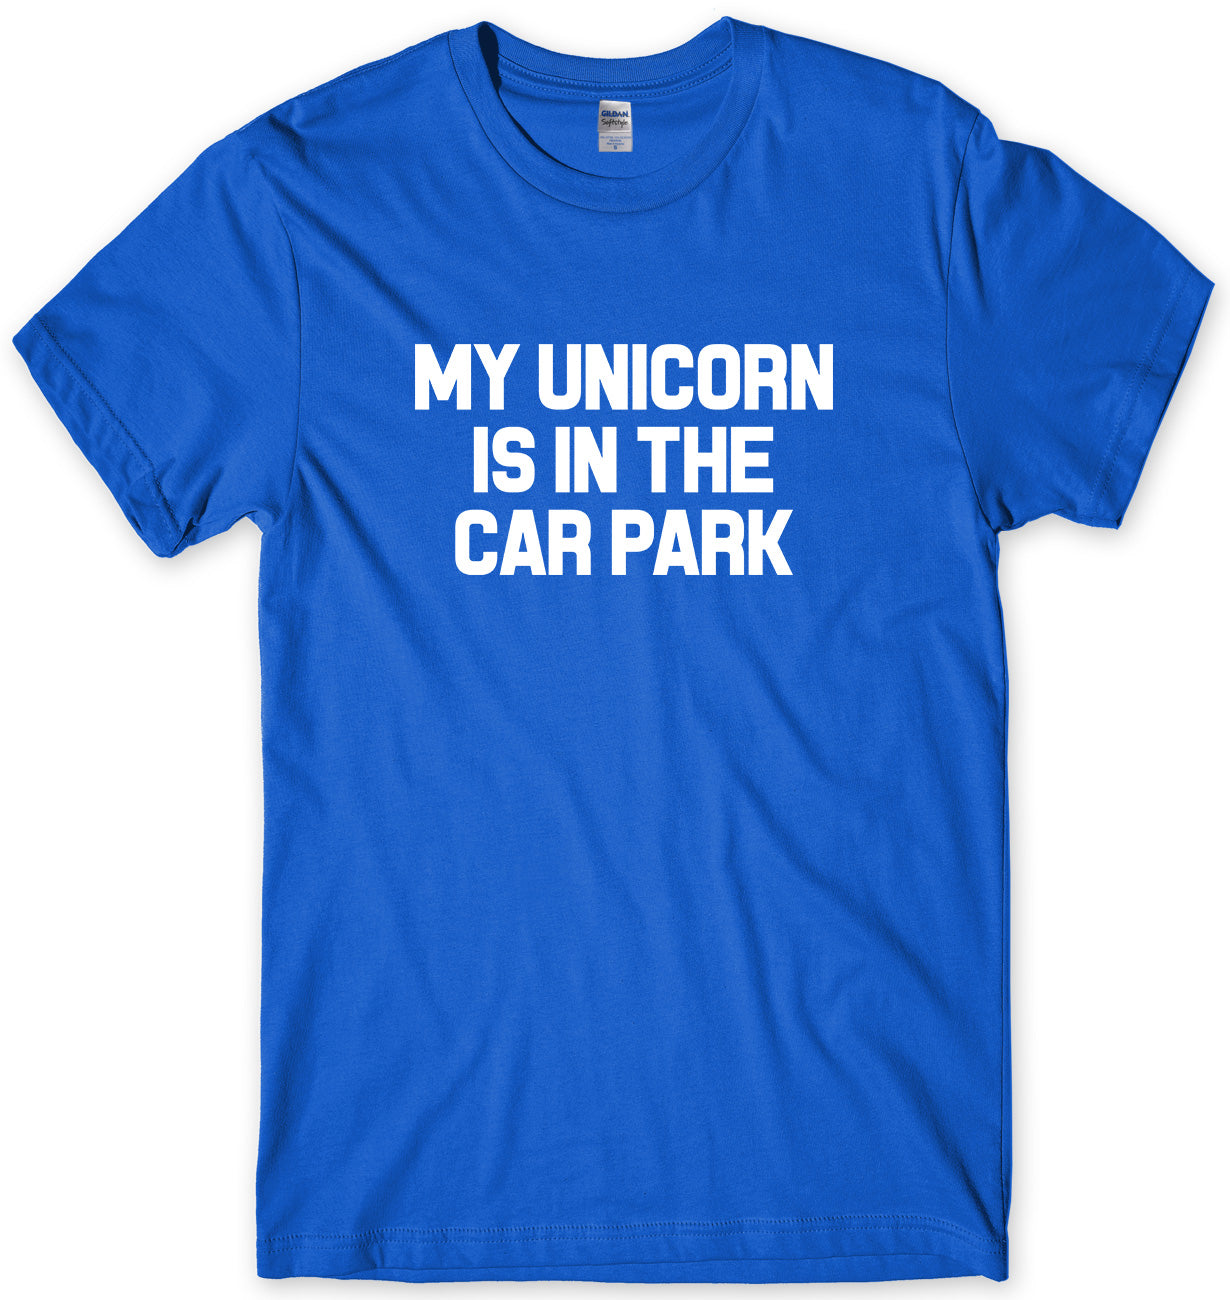 MY UNICORN IS IN THE CAR PARK MENS FUNNY UNISEX T-SHIRT